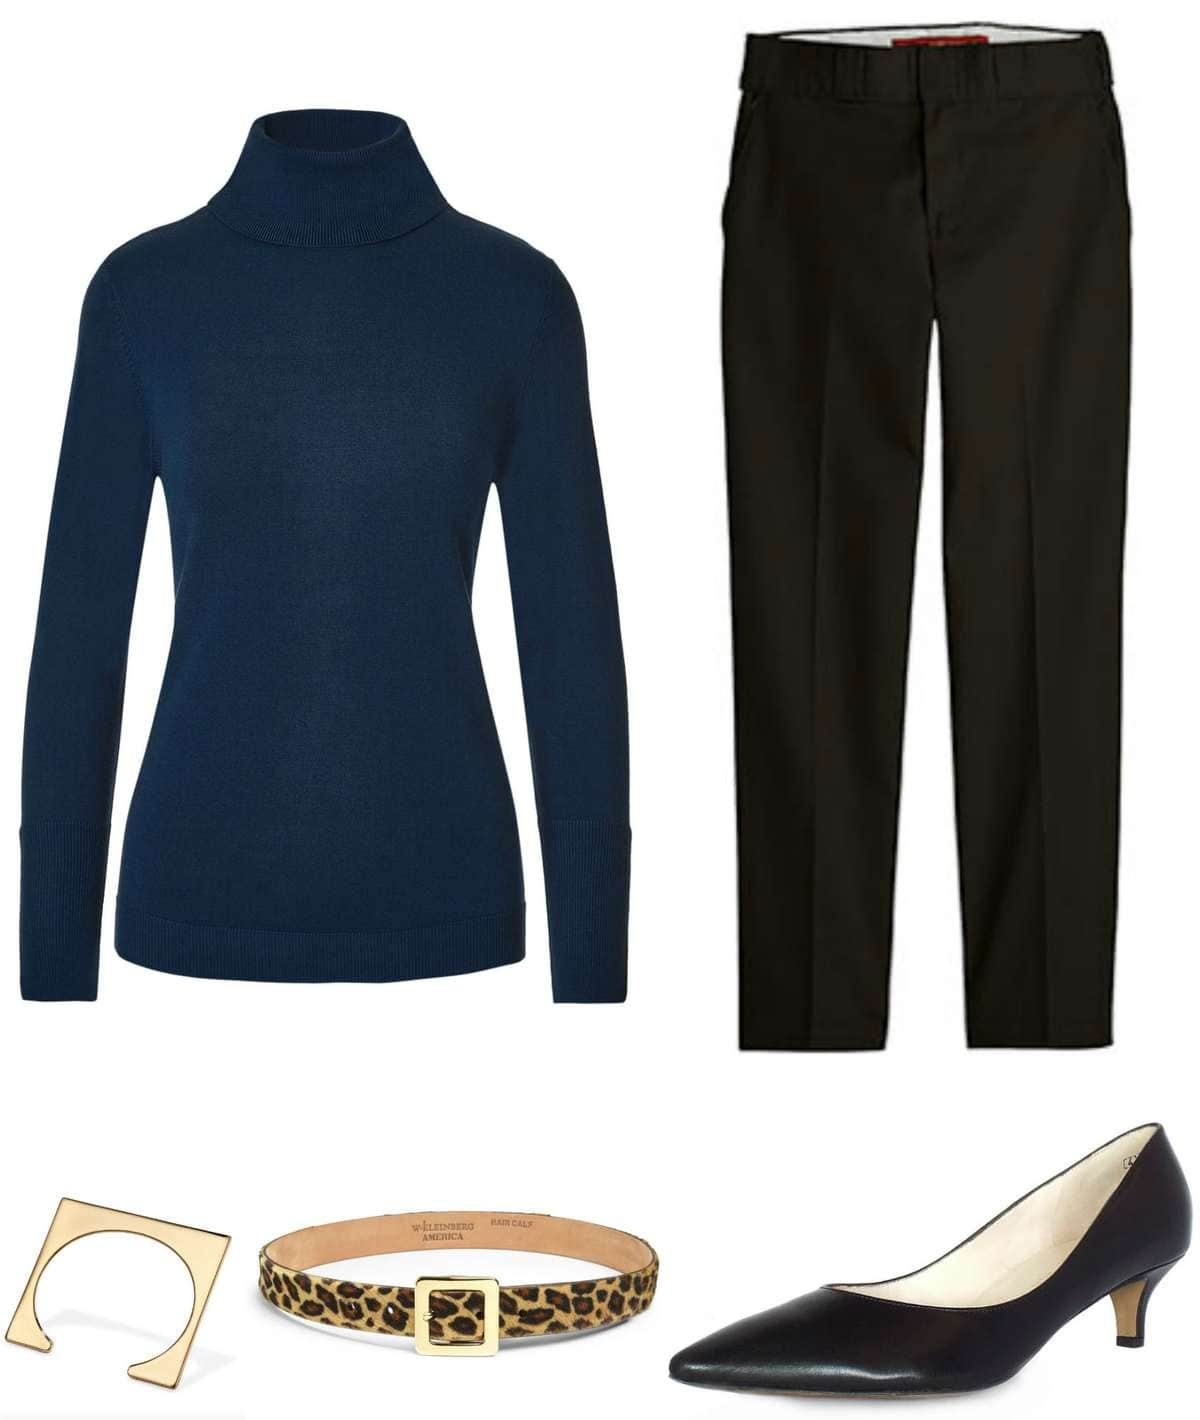 navy styled with black and leopard